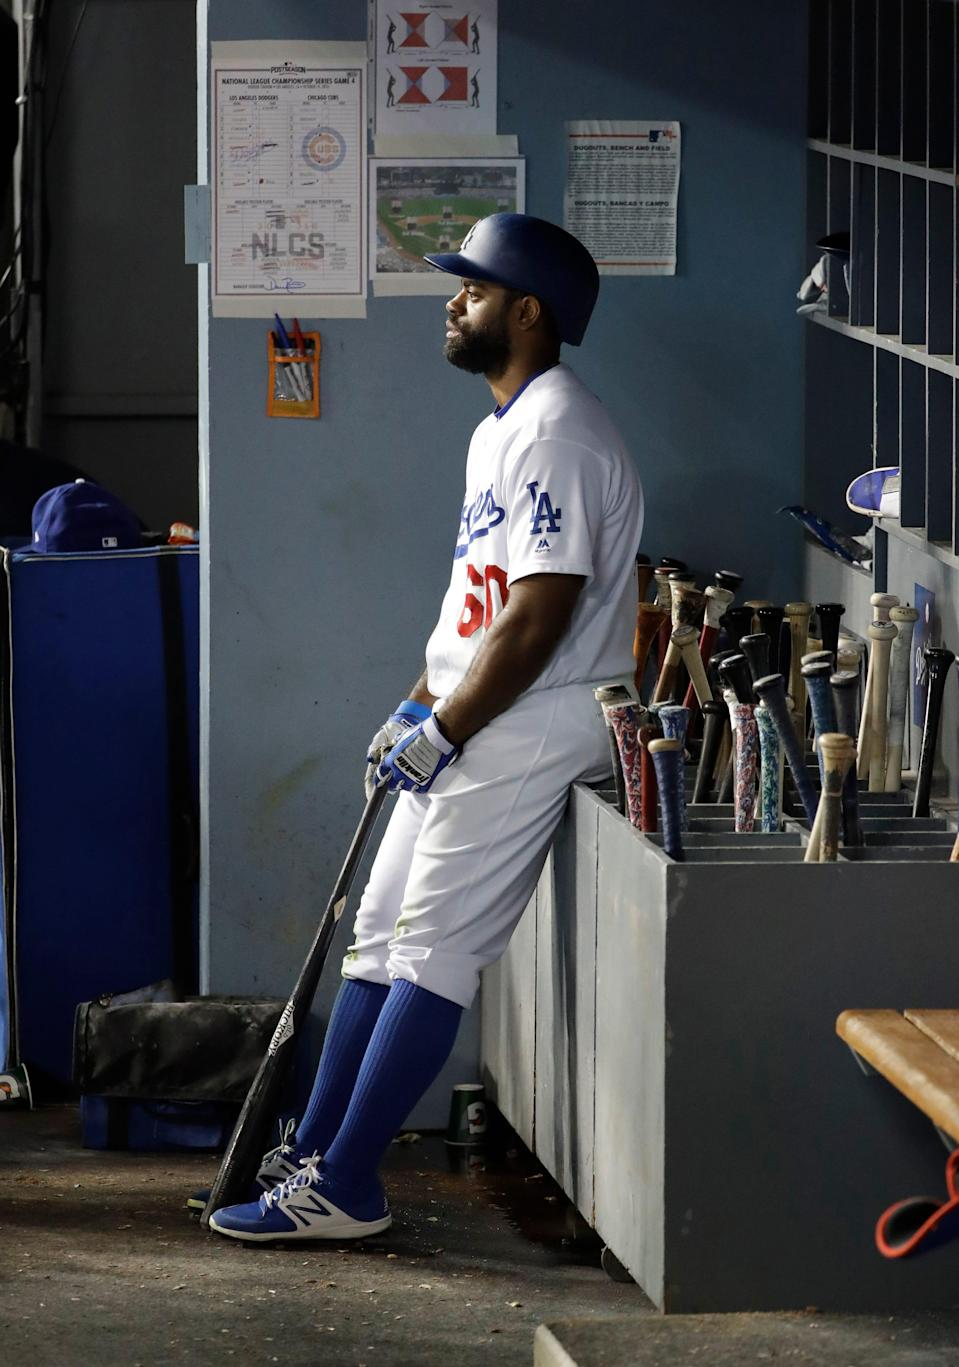 Andrew Toles hit .462 with a 1.082 OPS during the 2016 NLCS against the Cubs.